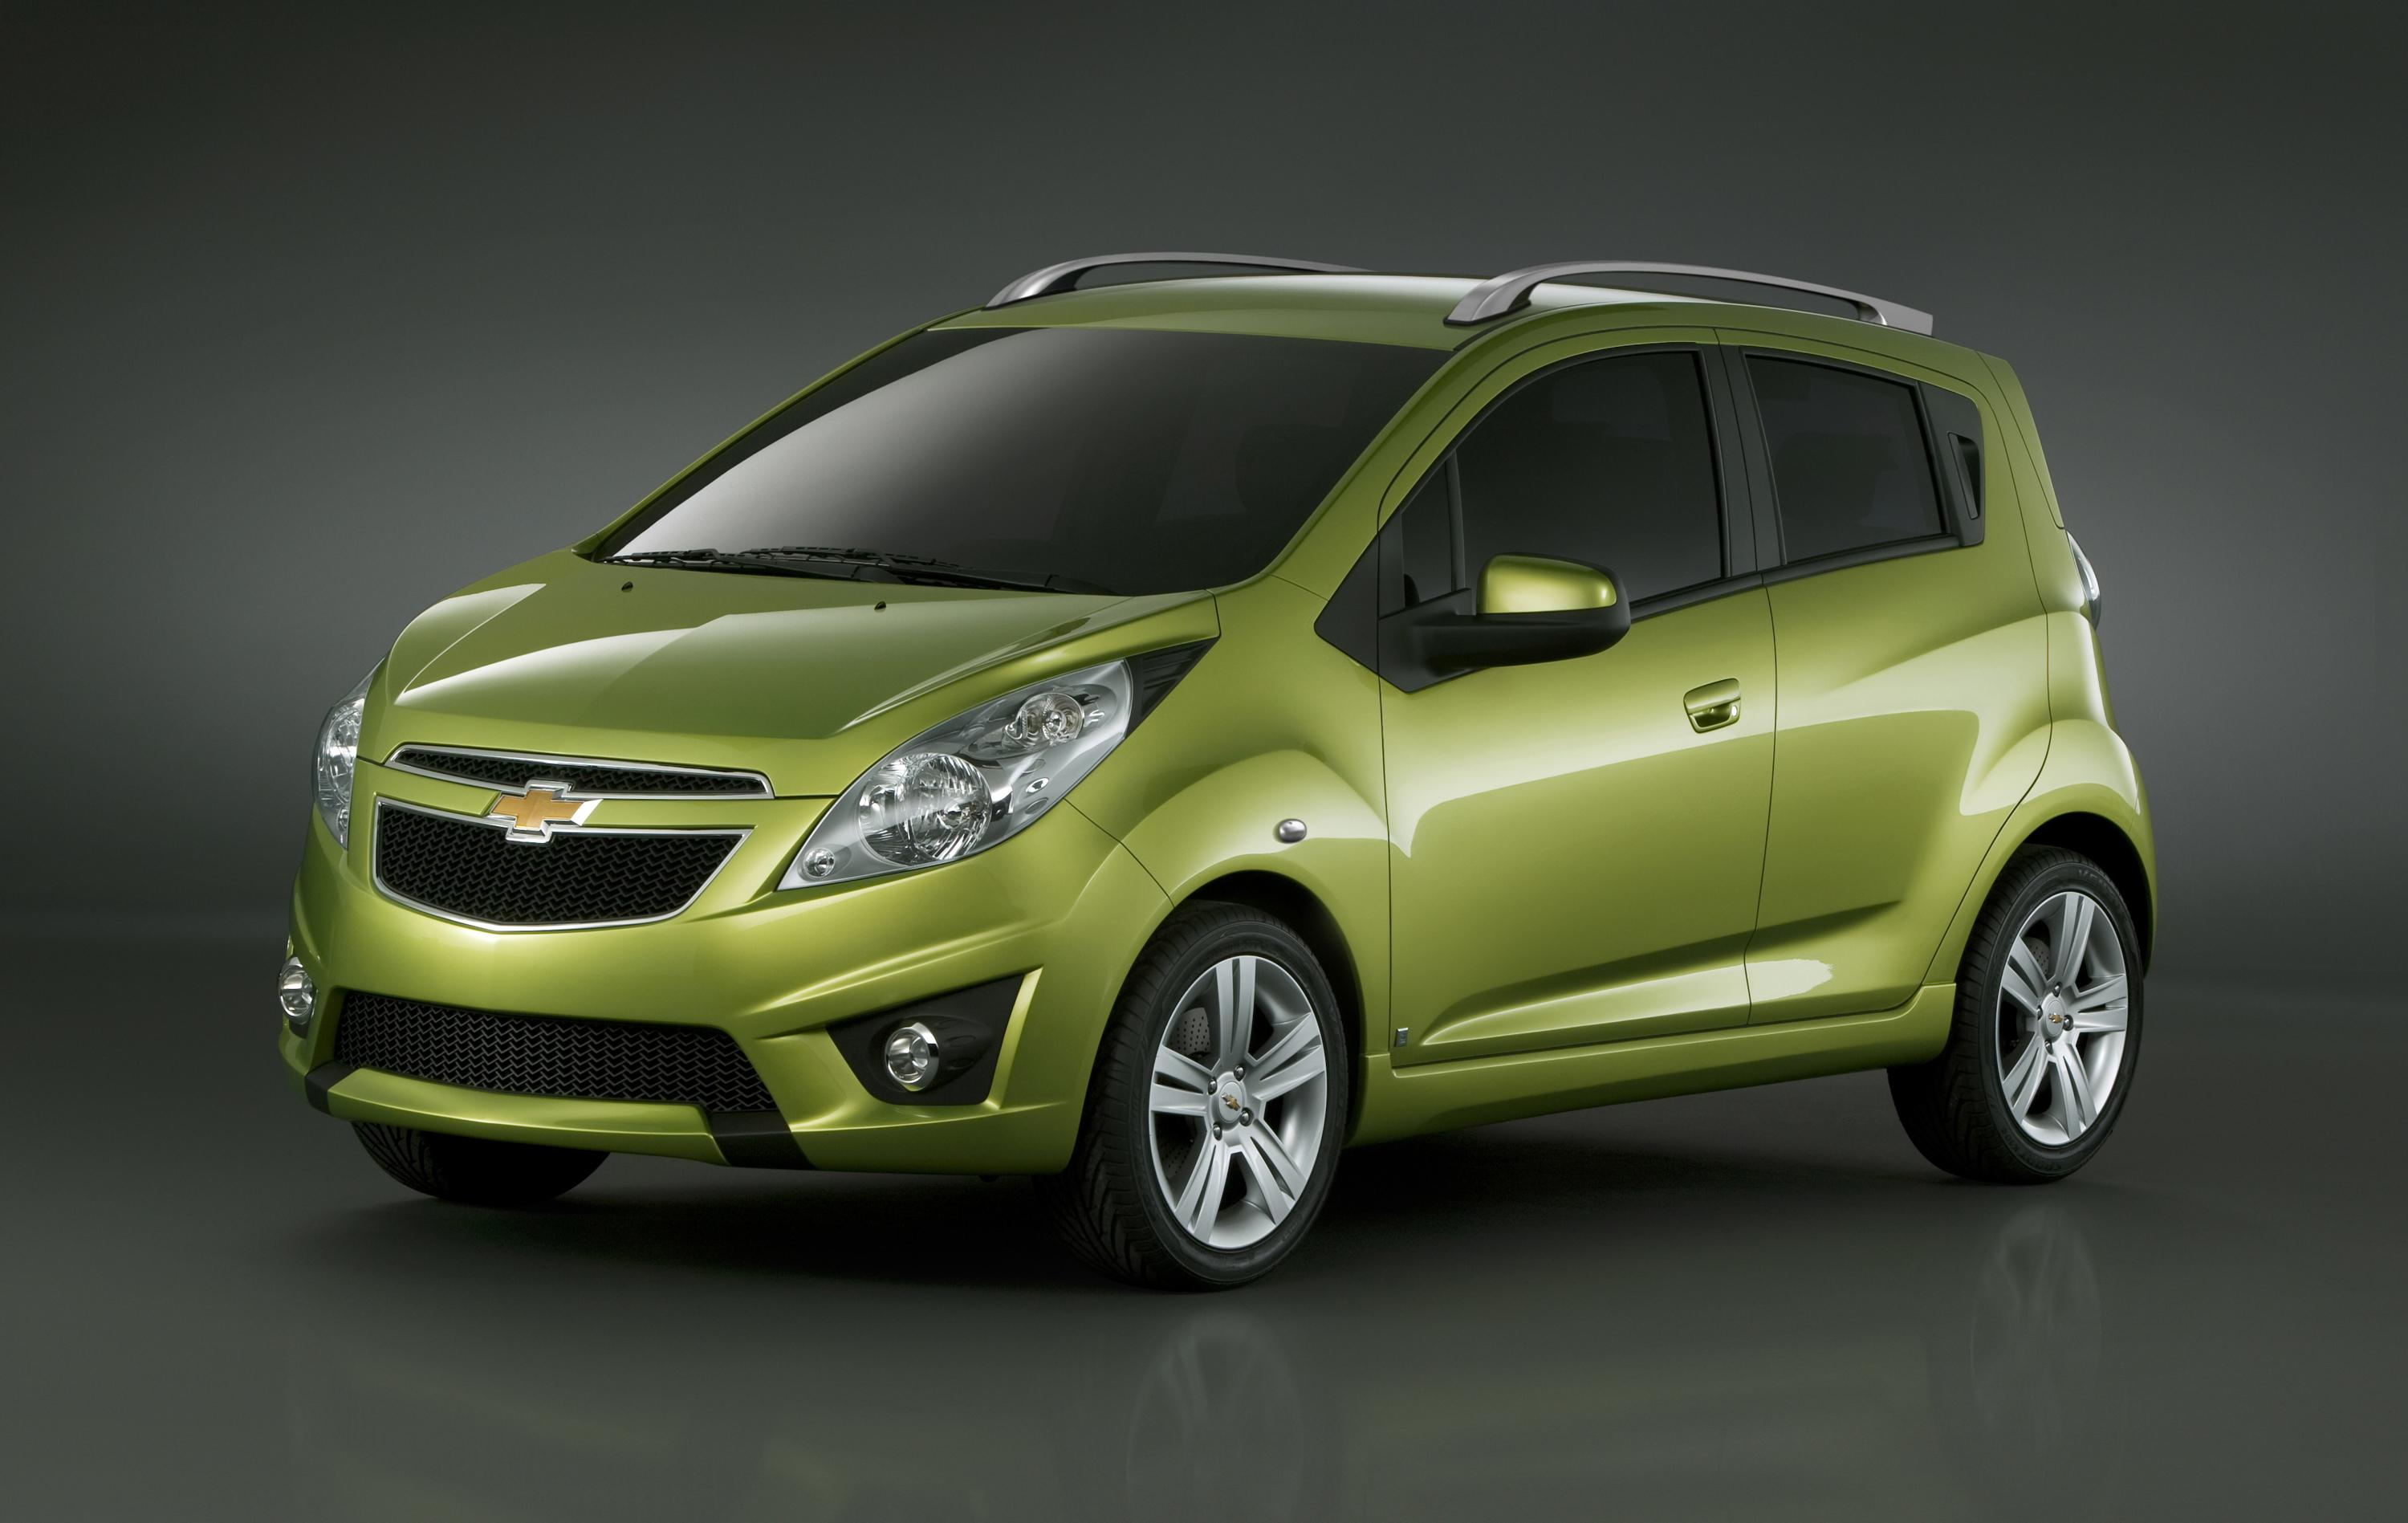 Chevrolet has revealed the spark ahead of the geneva motor show if the car looks familiar that s because this is the production ready version of the chevy